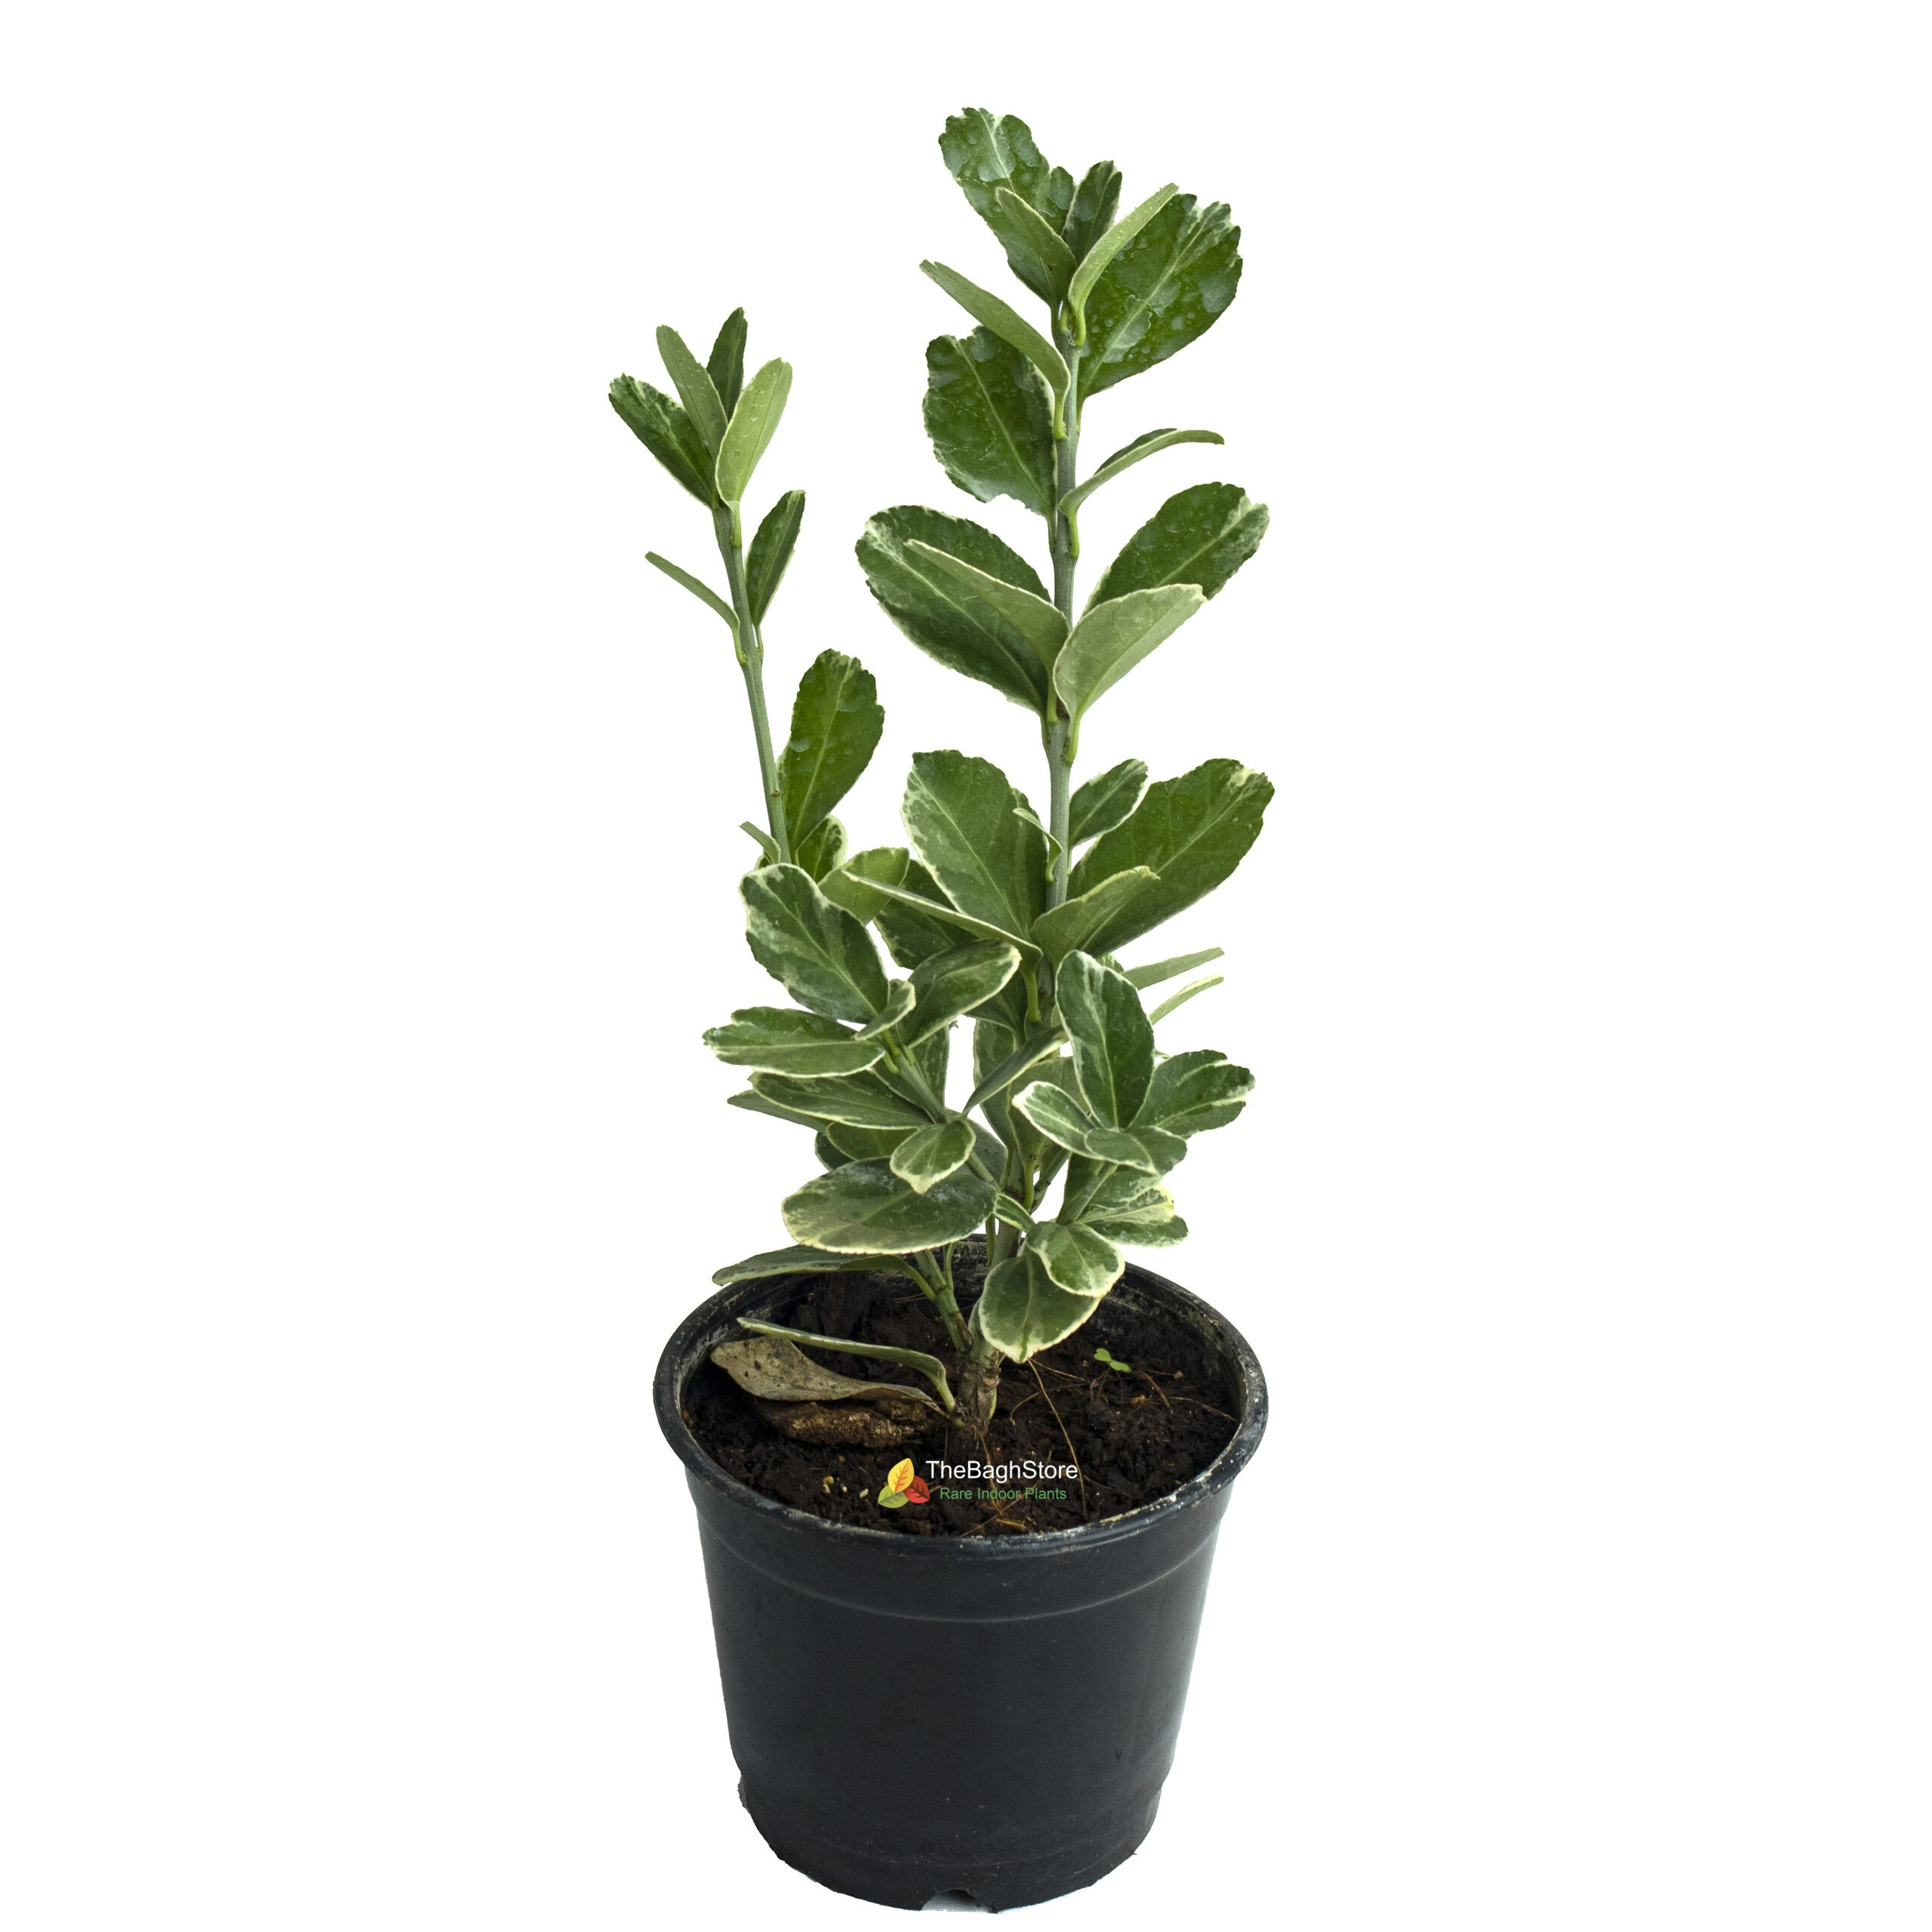 Euonymus fortunei 'Emerald Gaiety', Plant